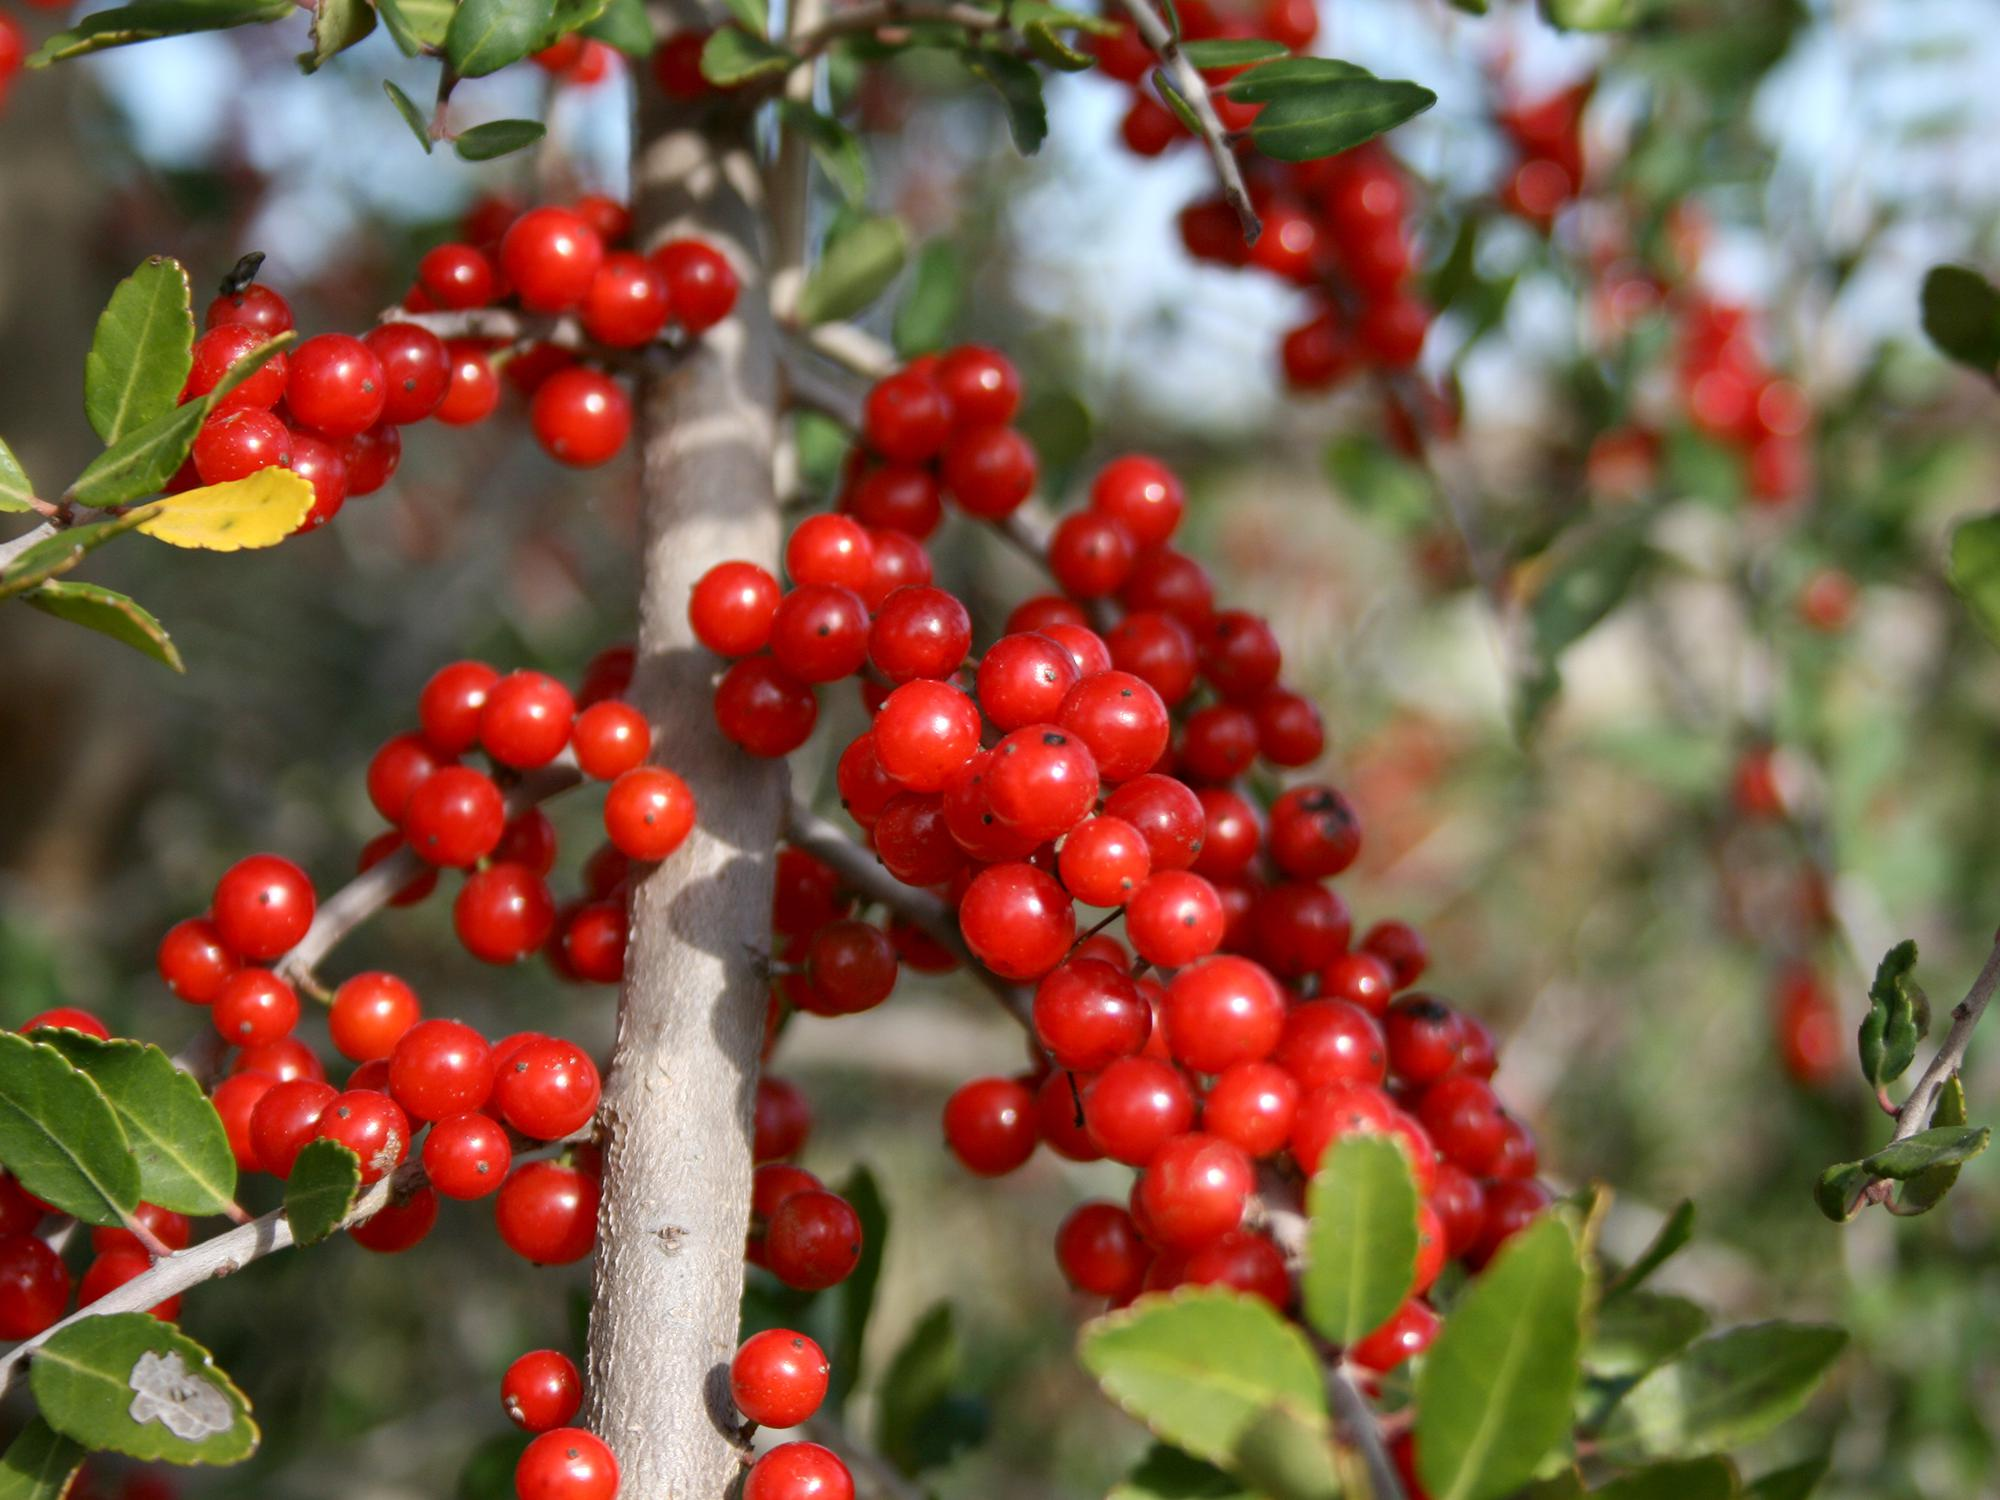 The Mississippi native yaupon holly can be seen popping out of woodland edges everywhere. Its distinctive berries have a translucent quality that imparts a gem-like appearance. (Photo by MSU Extension/Gary Bachman)